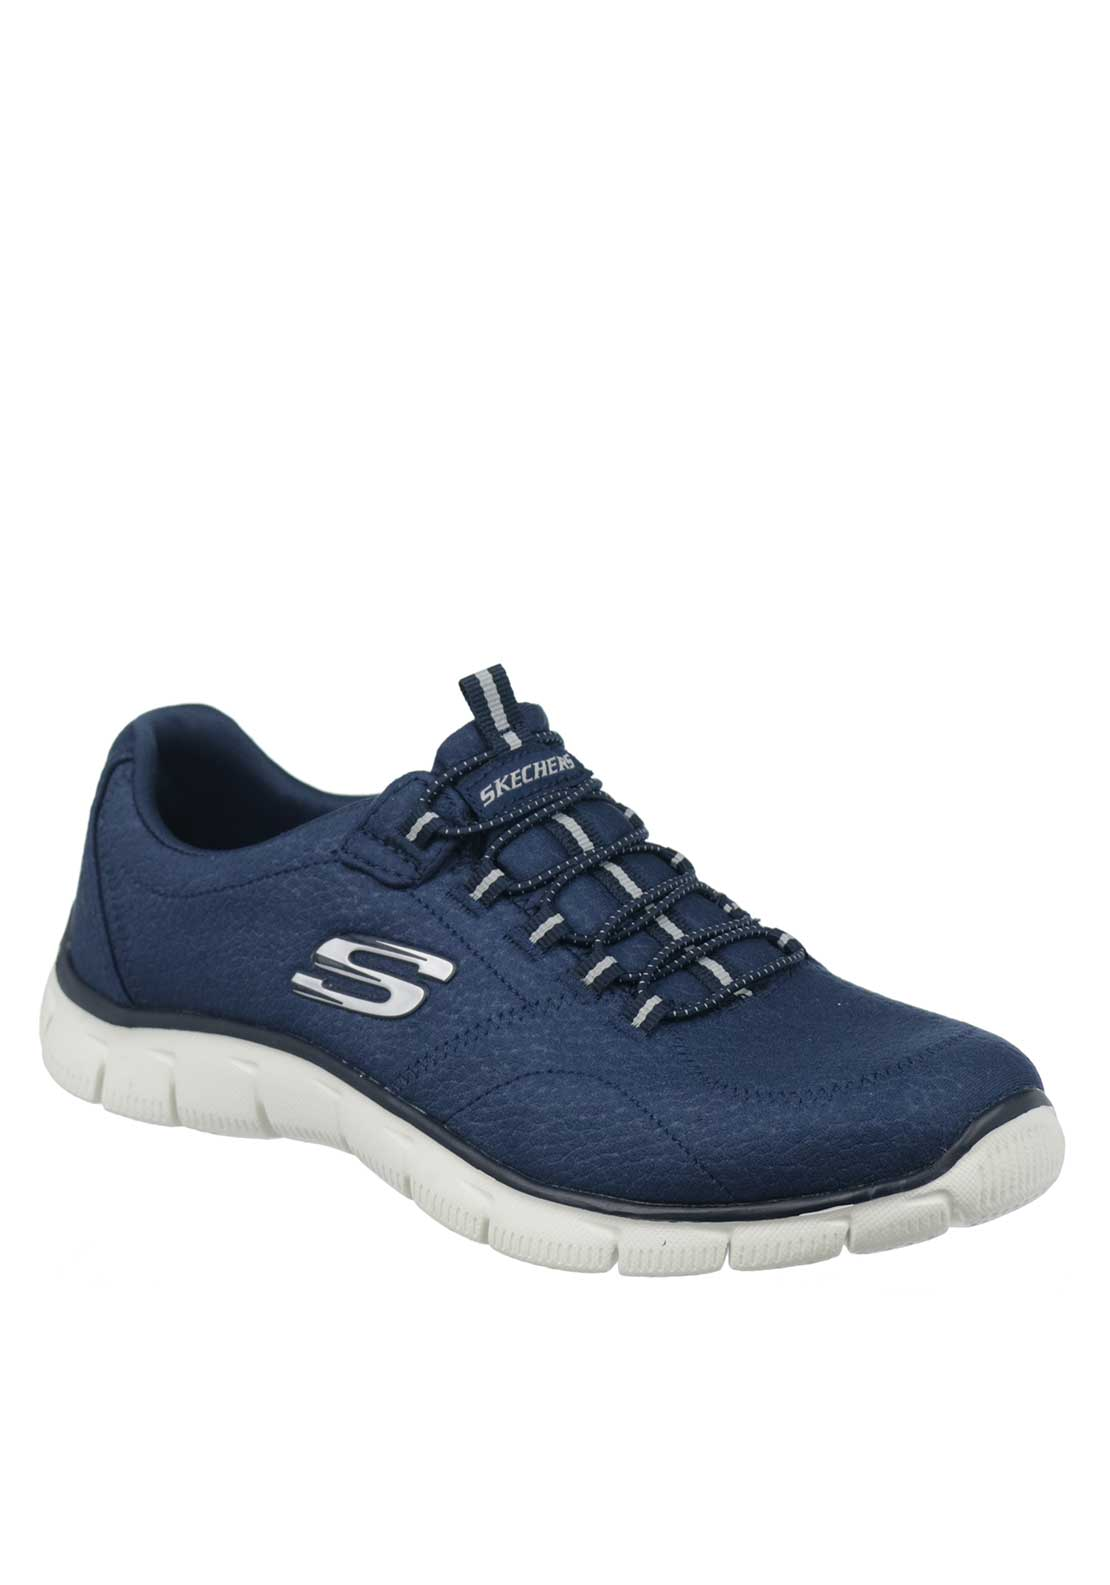 Skechers Womens Relaxed Fit Empire Take Charge Slip On Trainers, Navy